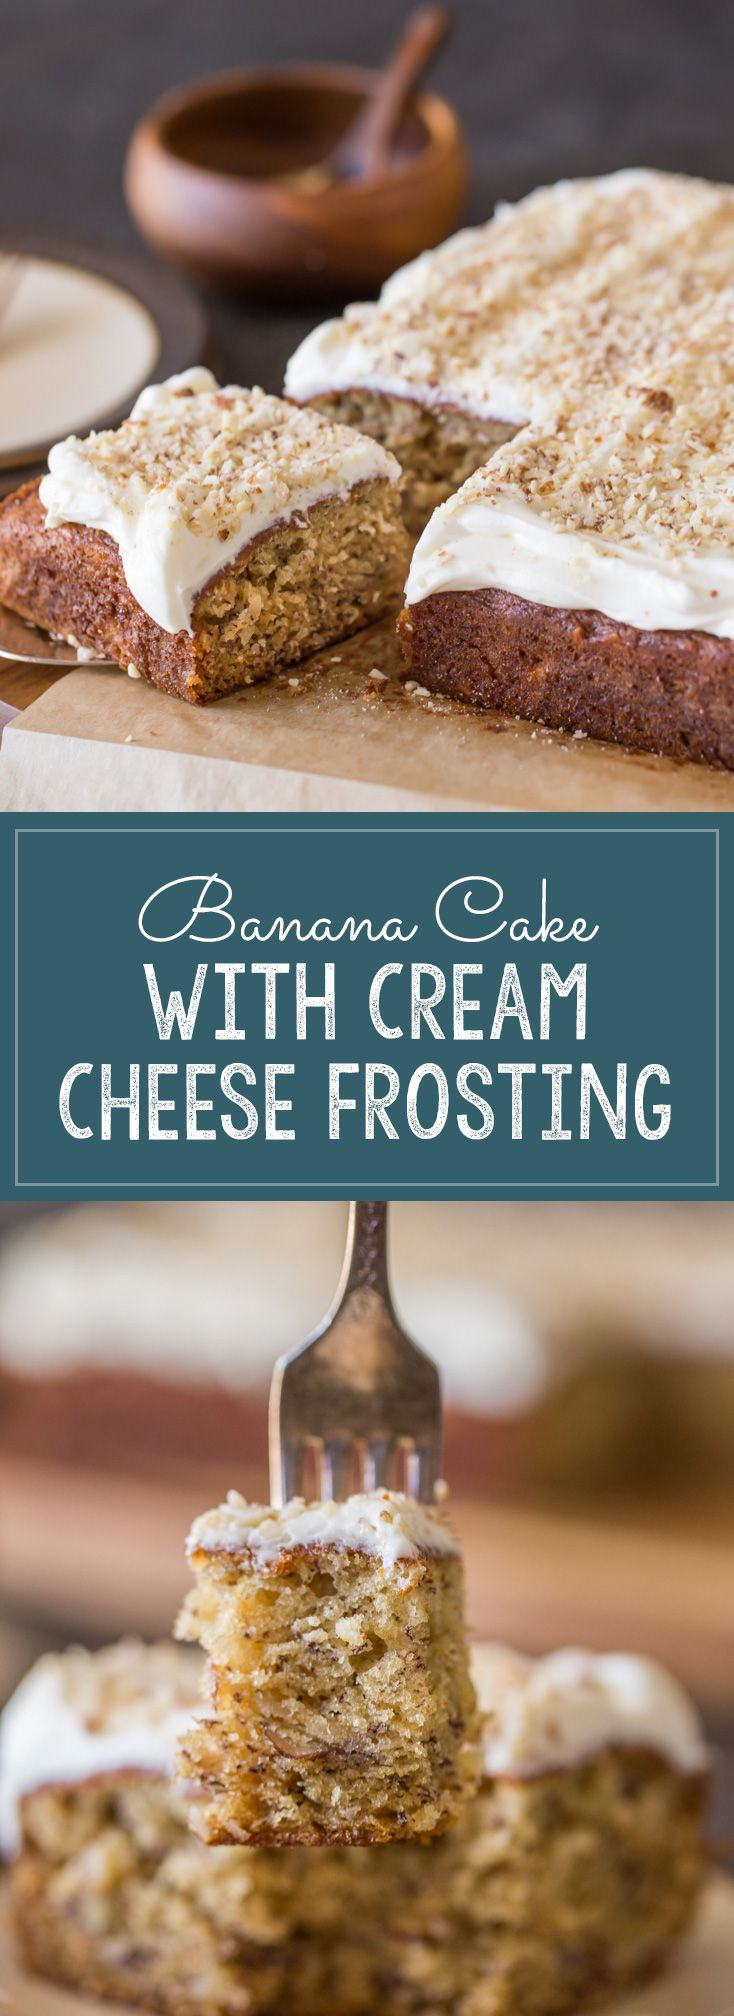 713 best Desserts images on Pinterest | Desserts, Pie recipes and ...